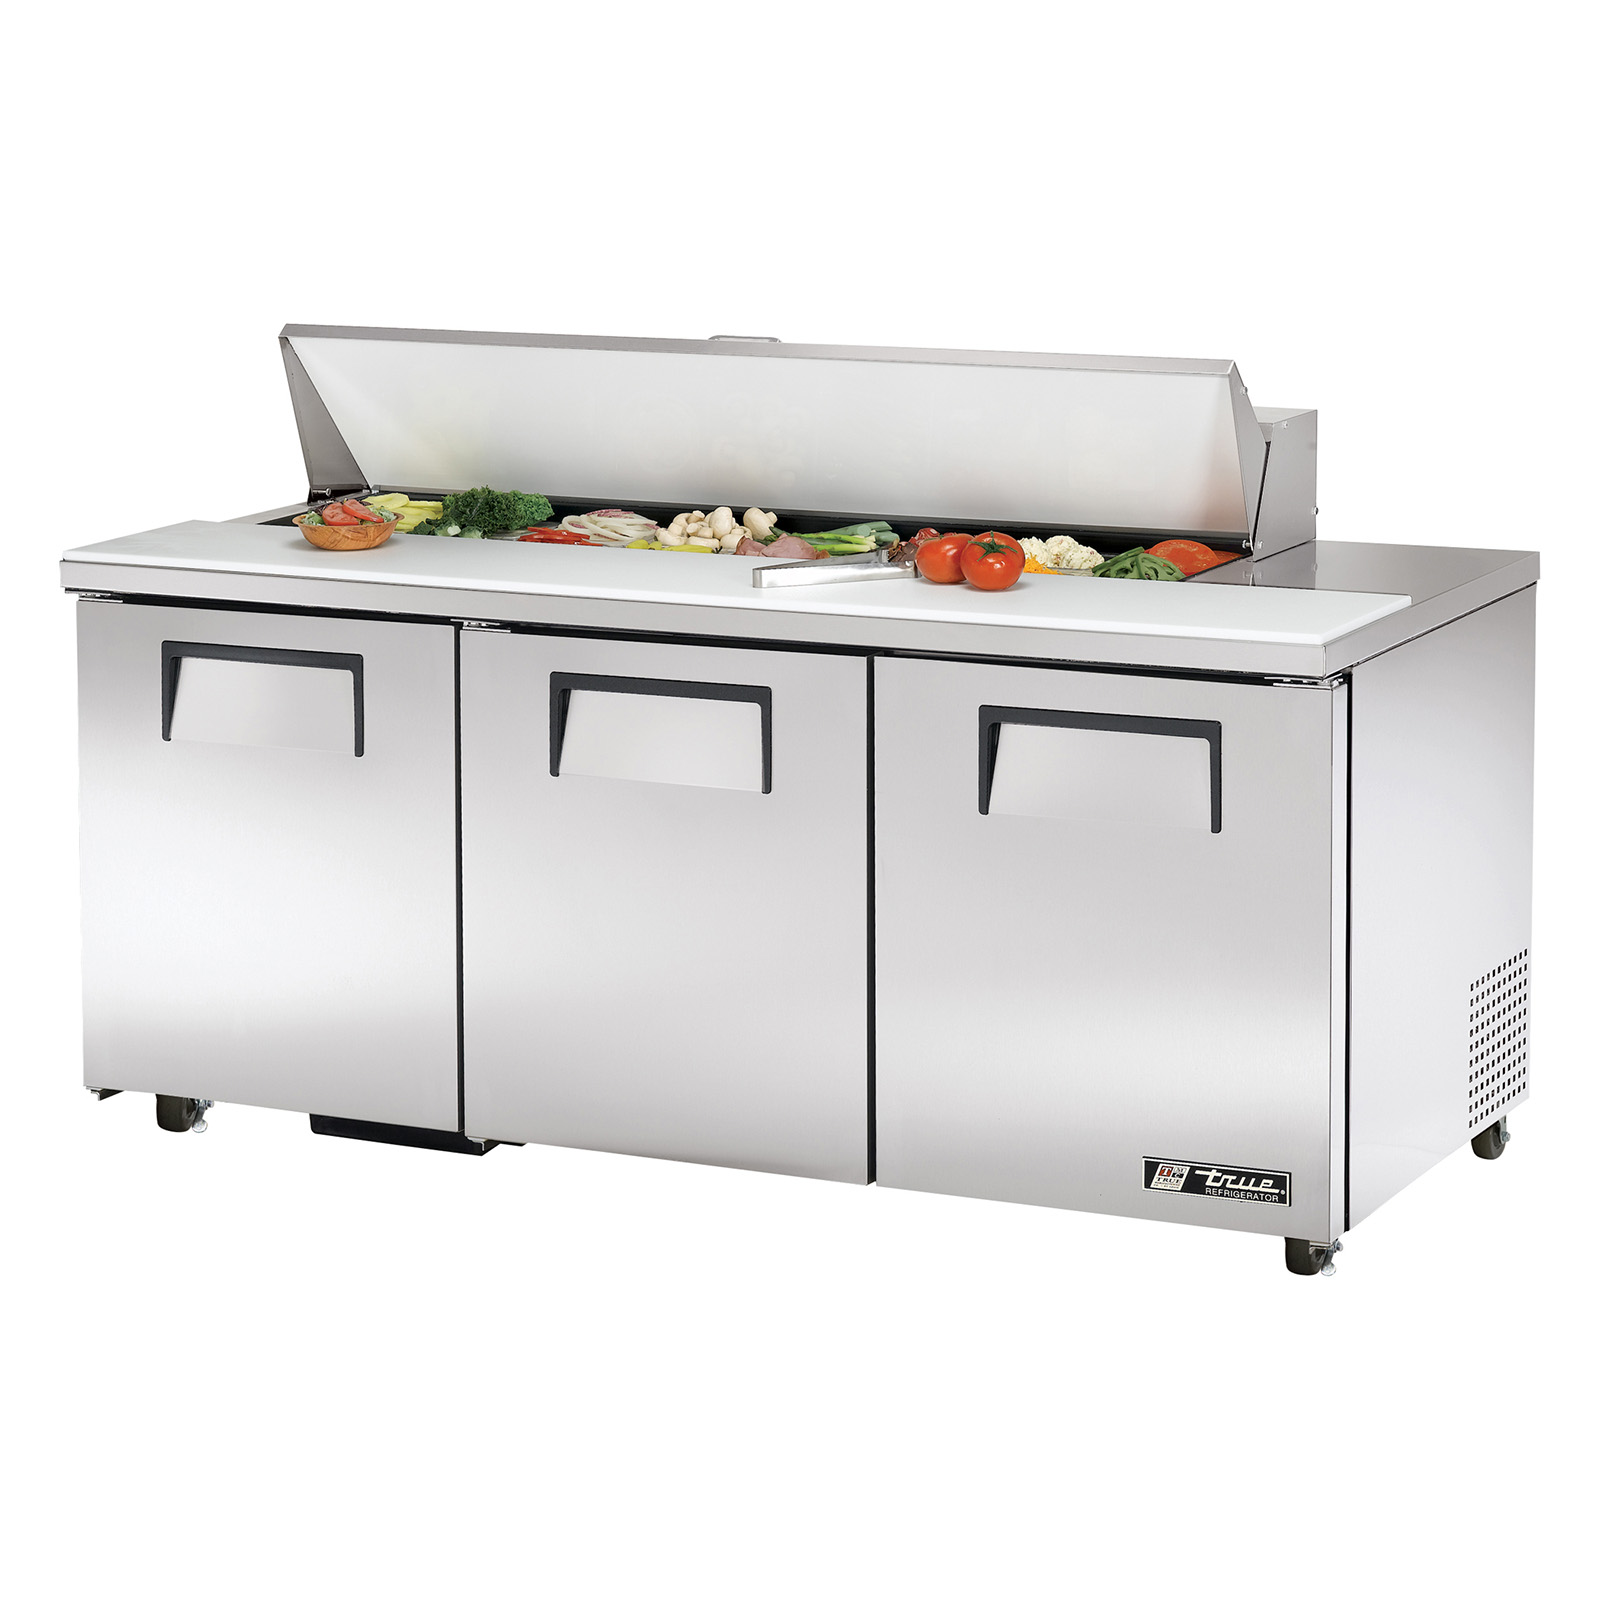 TSSU-72-16-ADA True - ADA Compliant Sandwich/Salad Unit (16) 1/6 size (4